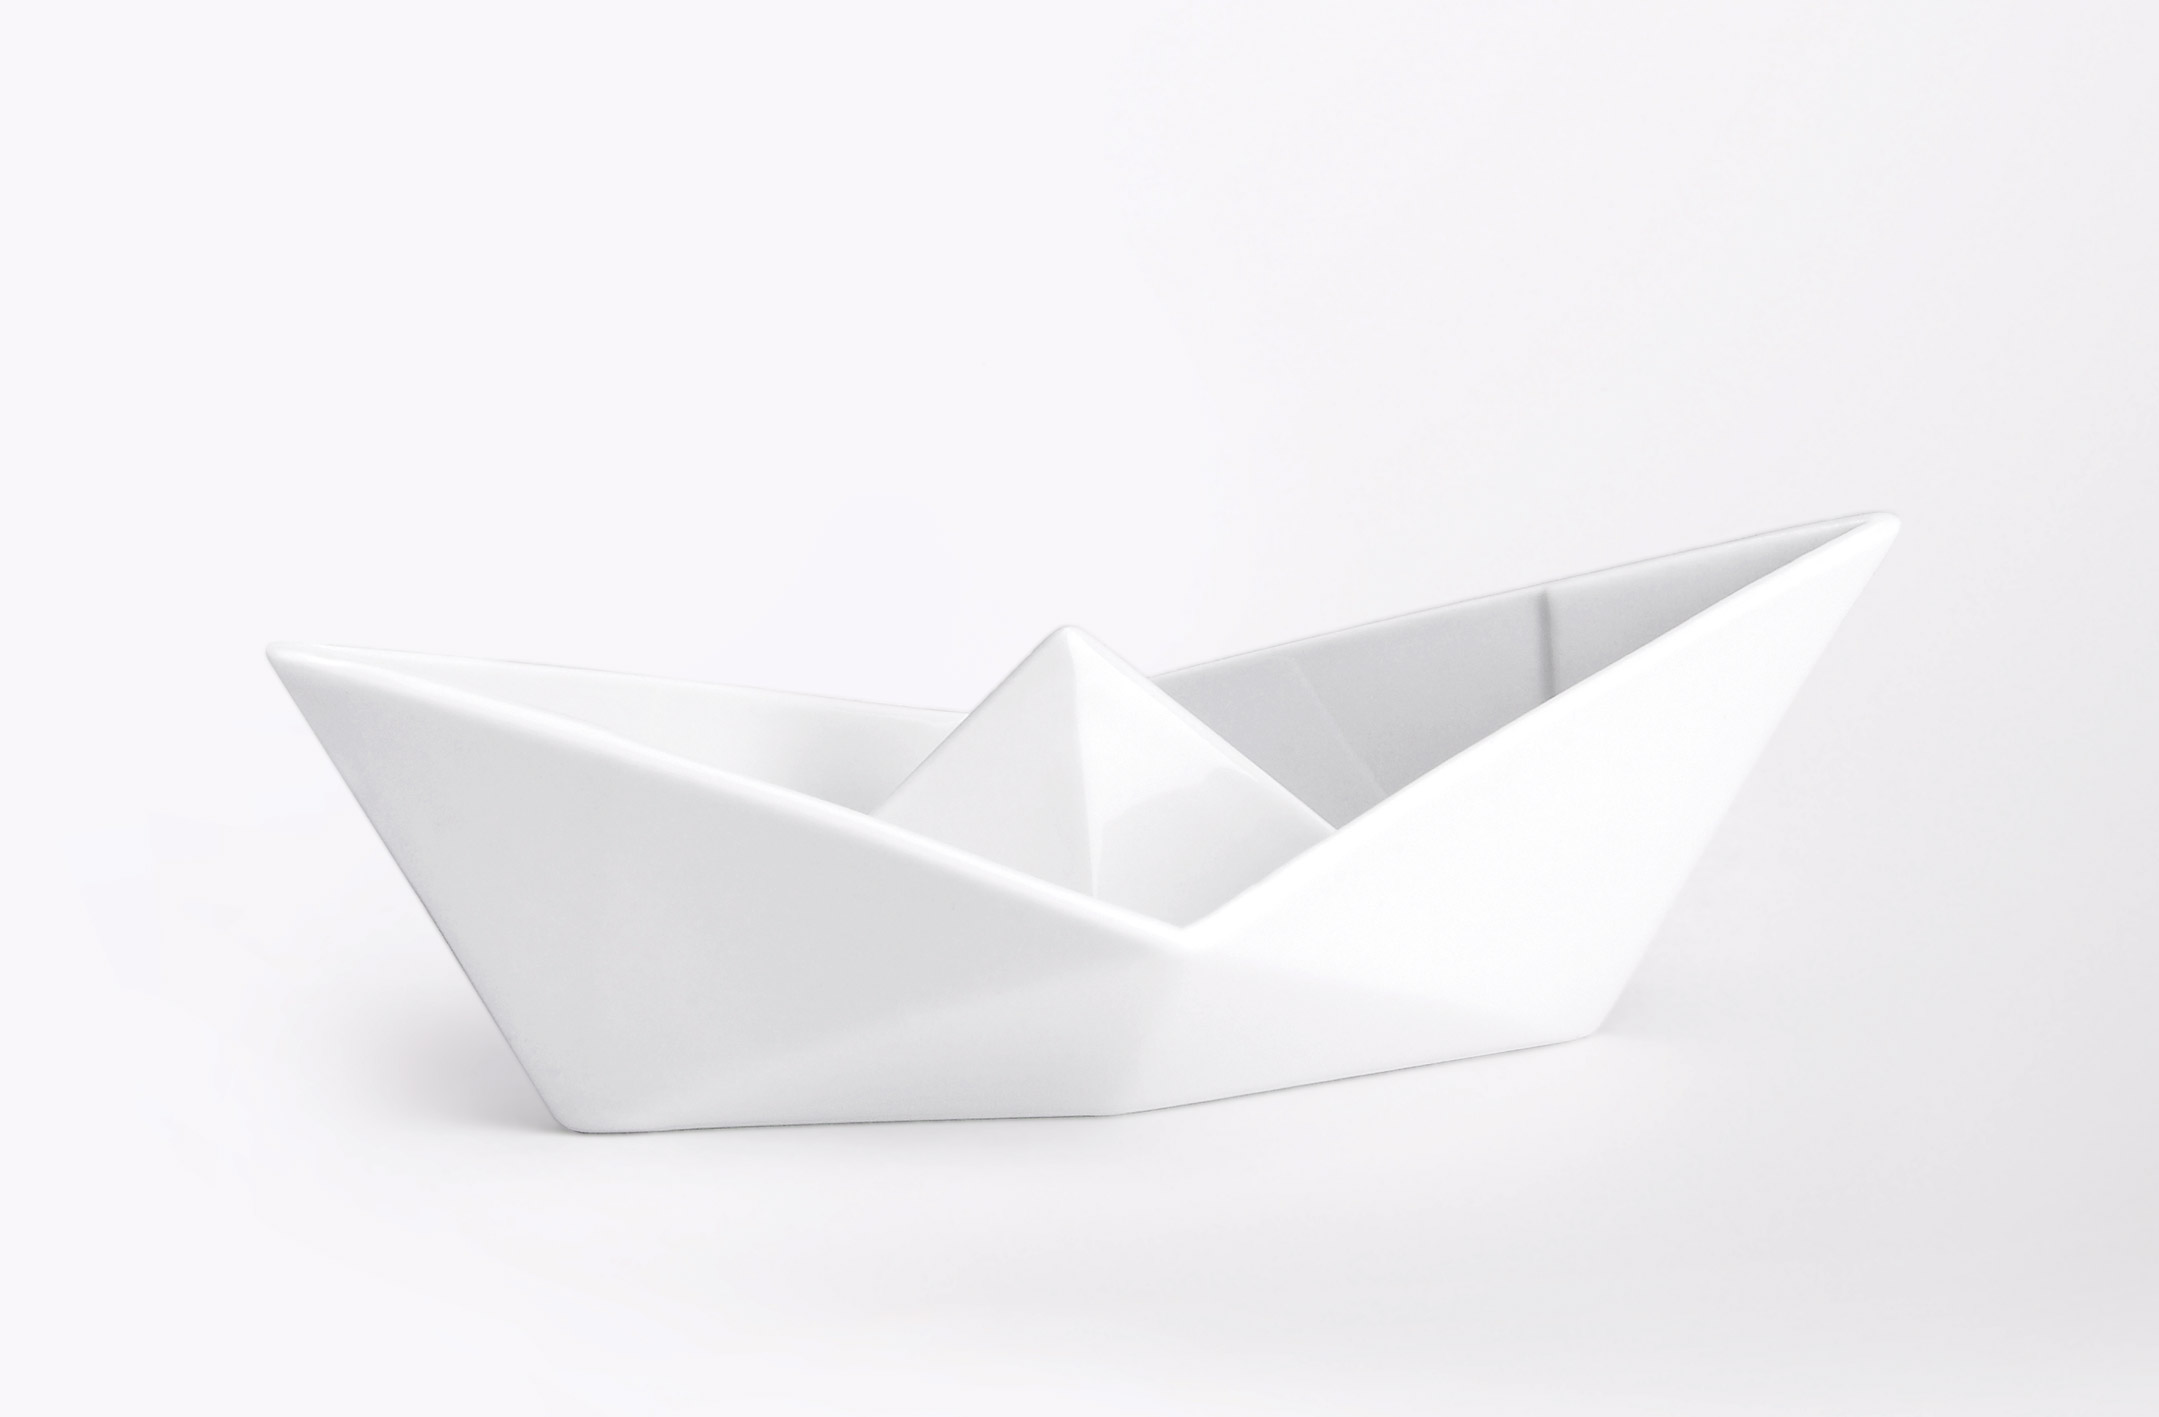 How to Make a Paper Boat: 10 Steps (with Pictures) - wikiHow | 1417x2159